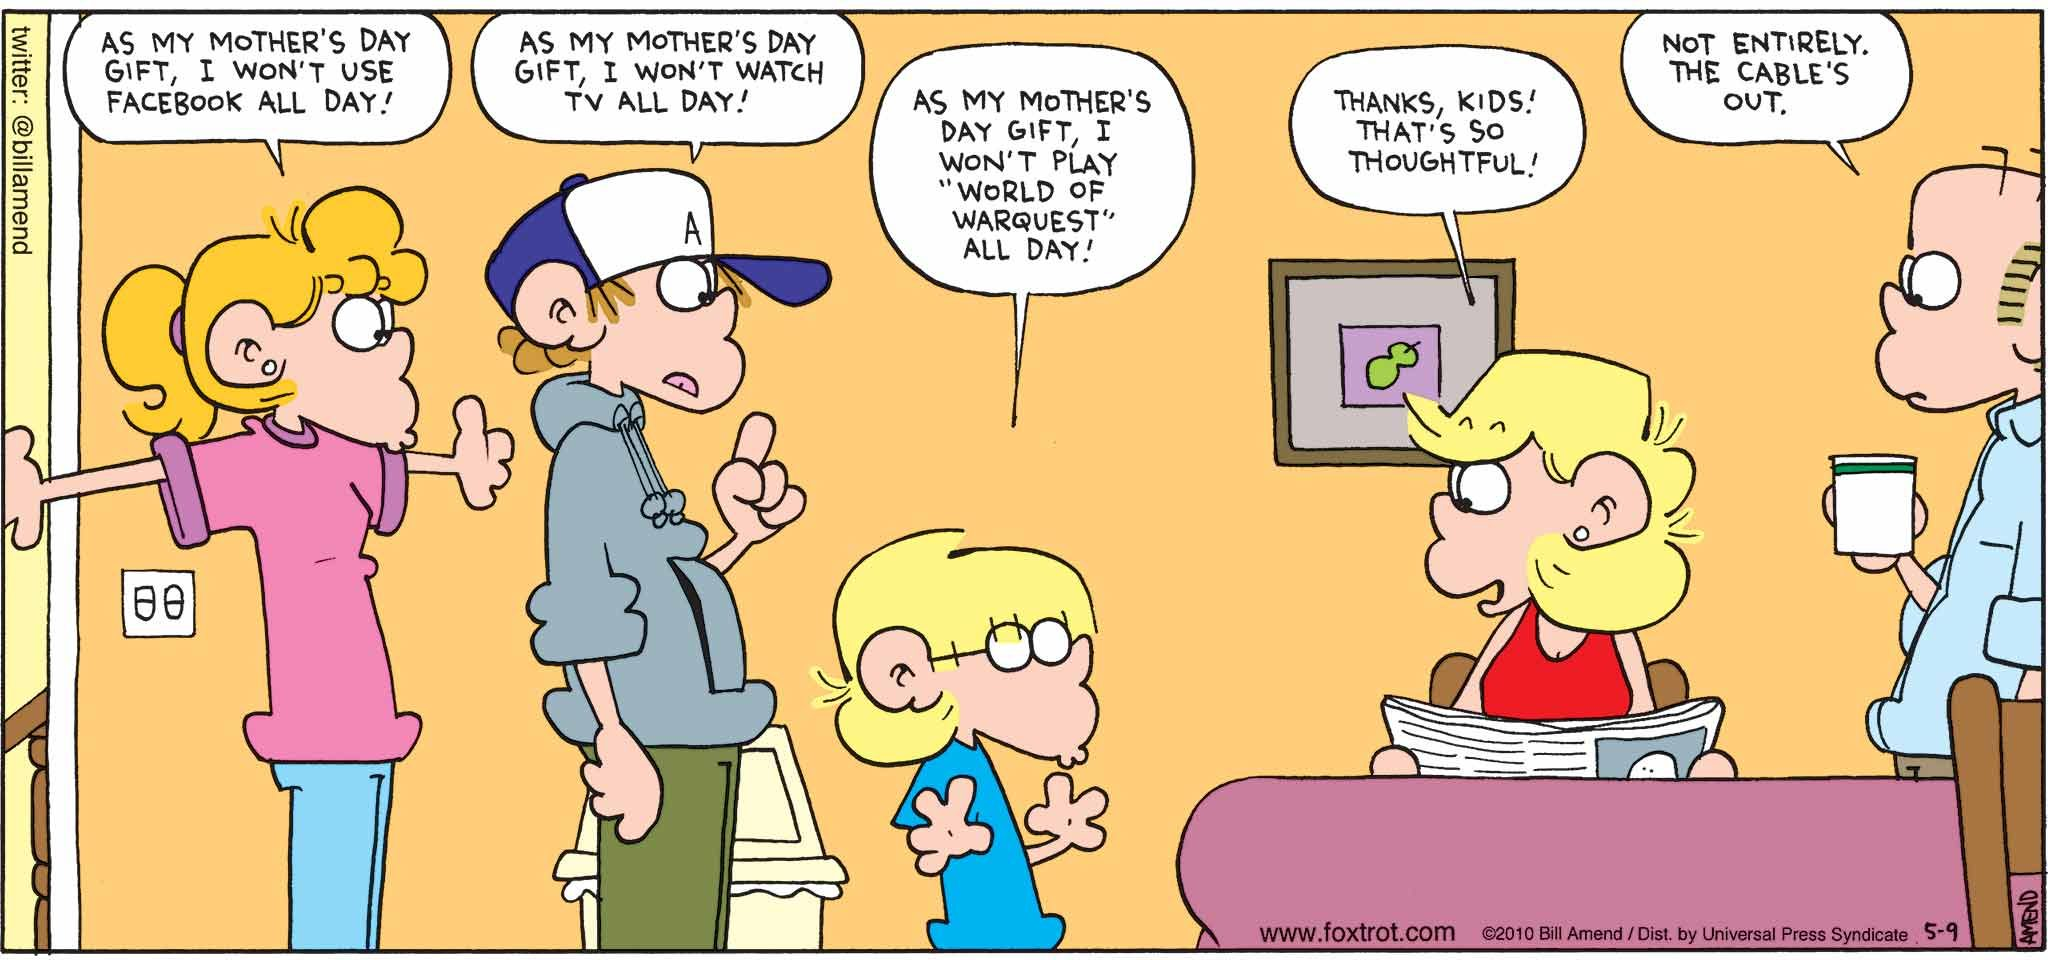 "FoxTrot by Bill Amend - Mother's Day comic published May 9, 2010 - Paige: As my Mother's Day gift, I won't use Facebook all day! Peter: As my Mother's Day gift, I won't watch TV all day! Jason: As my Mother's Day gift, I won't play ""World of Warquest"" all day! Andy: Thanks, kids! That's so thoughtful! Roger: Not entirely. The cable's out."